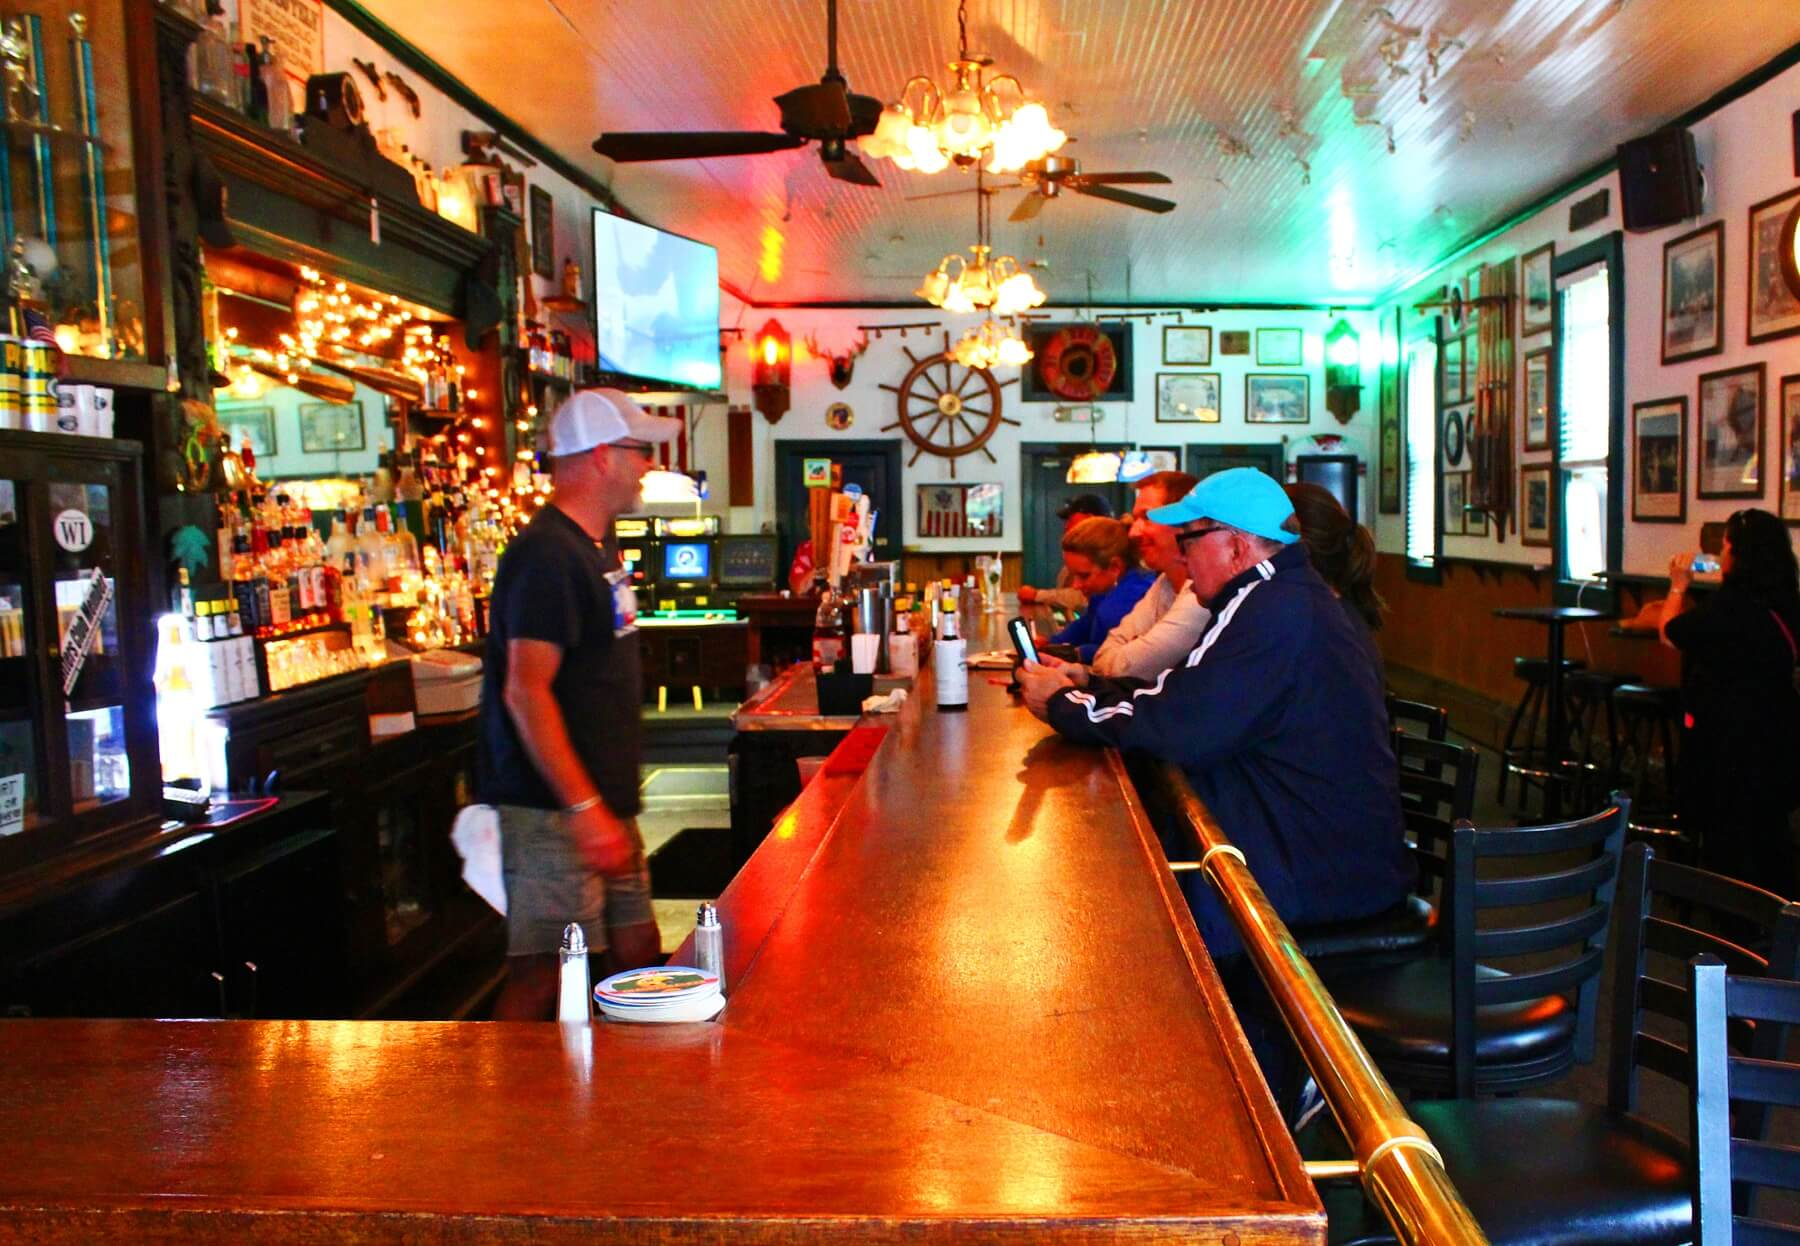 Nelsen's Hall Bitters Pub & Restaurant is a colorful place with lots of character.